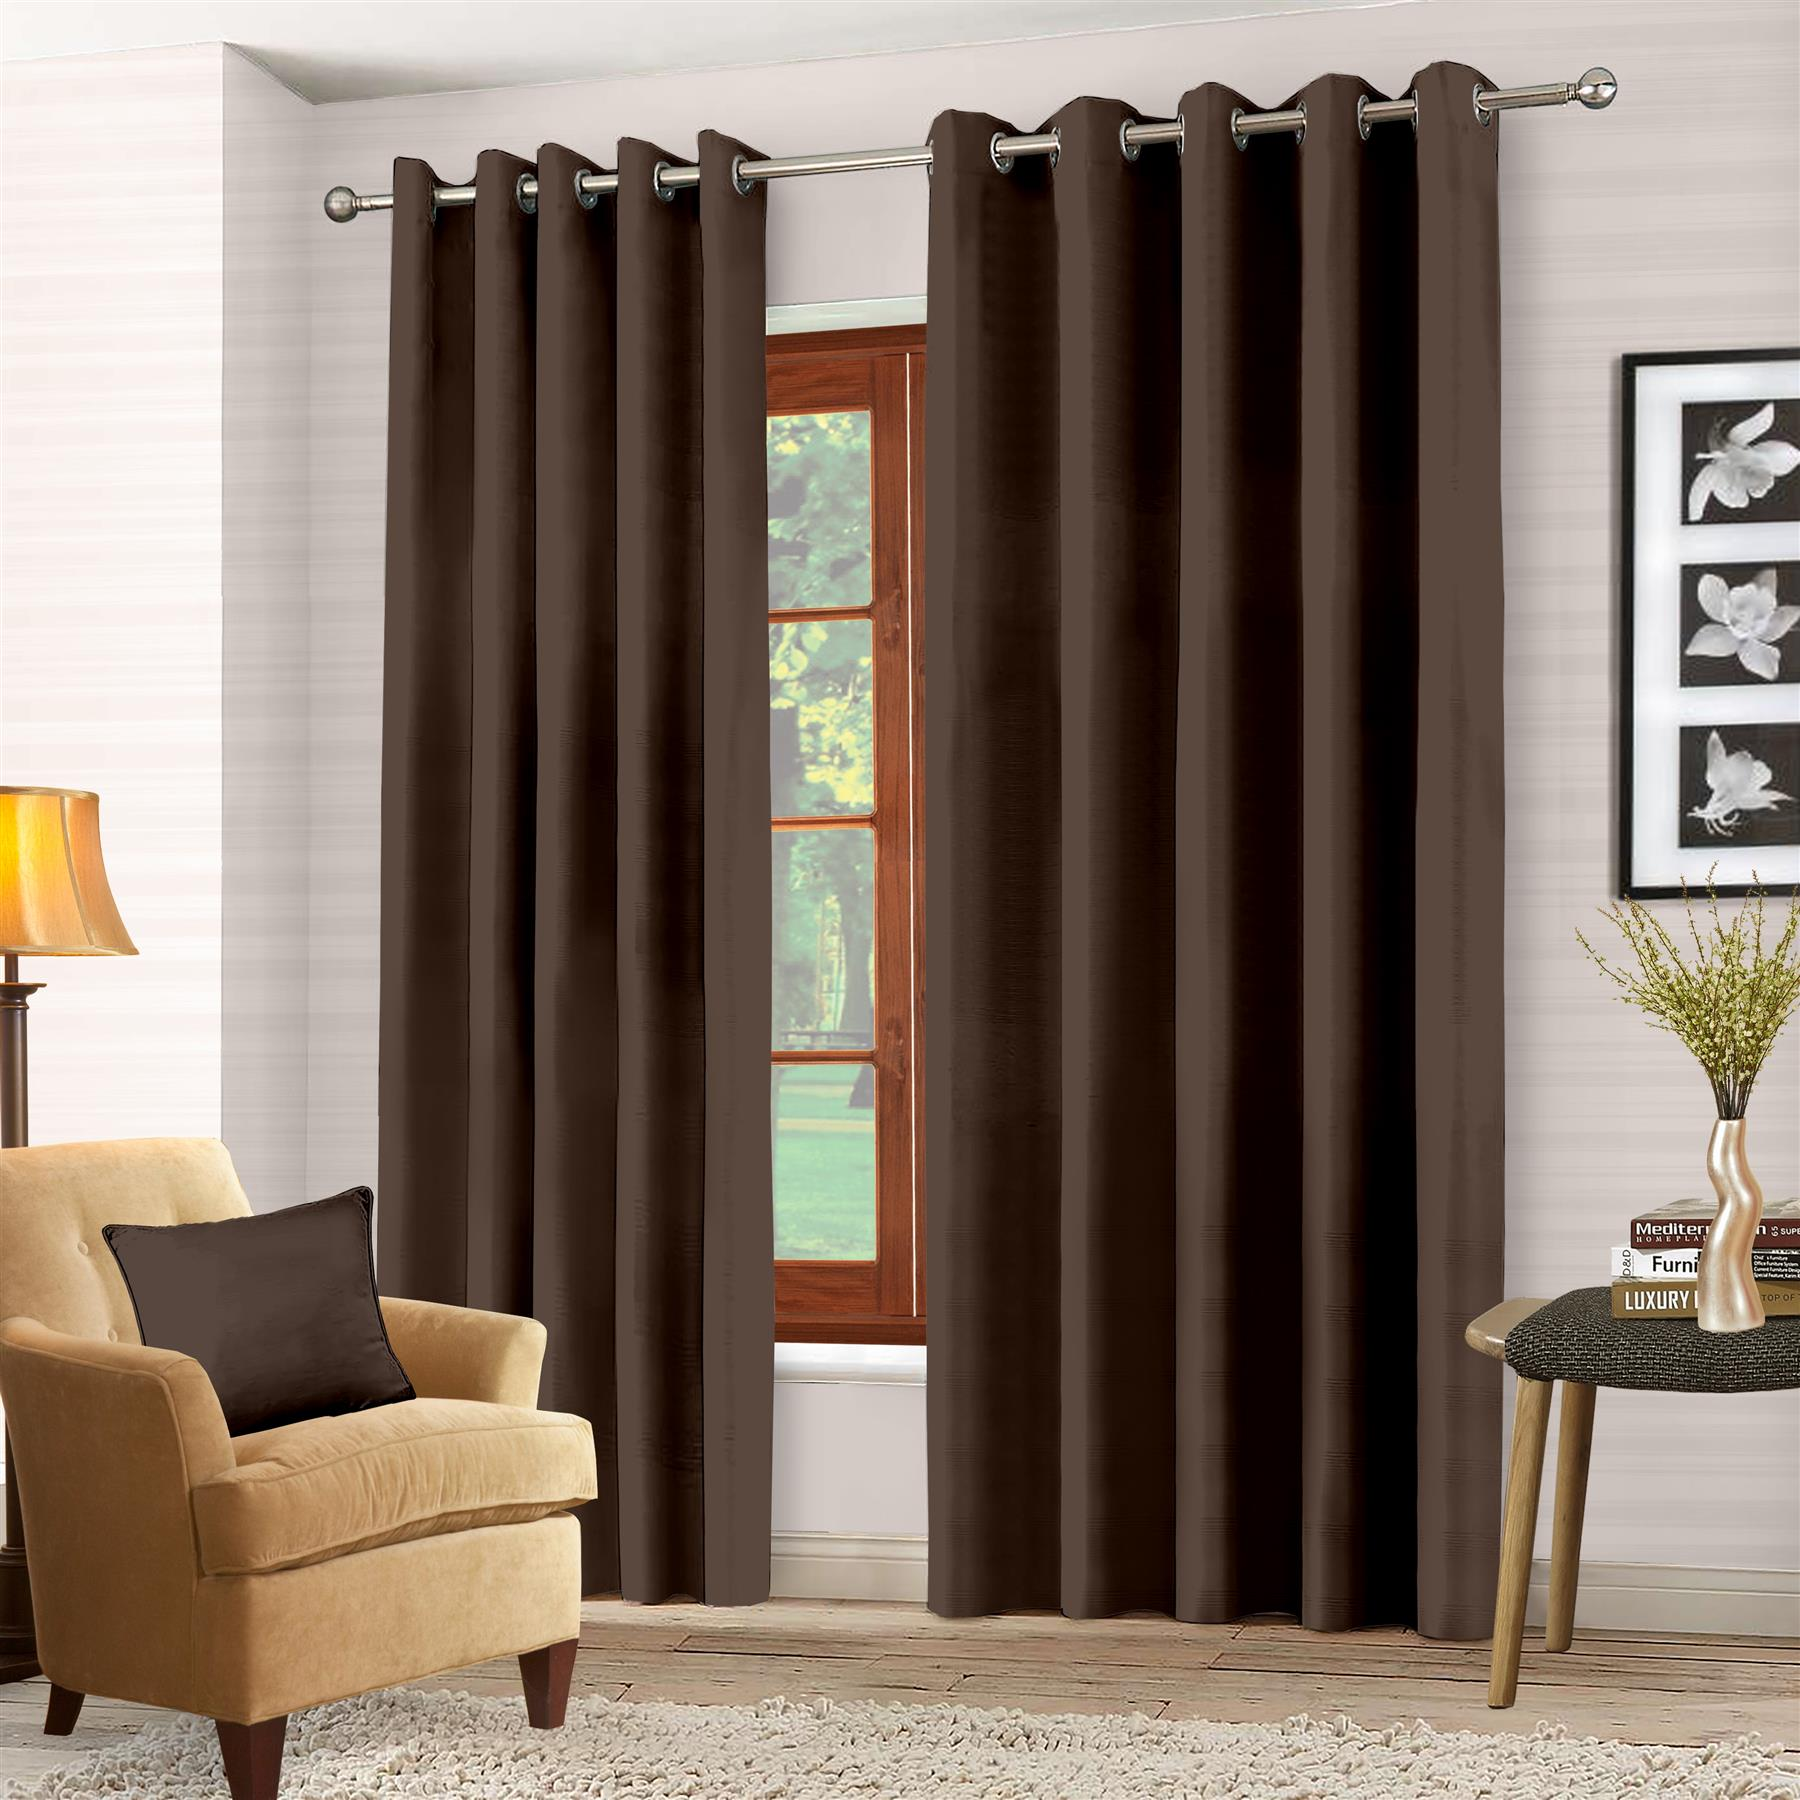 Luxury-Thermal-Blackout-Eyelet-Ring-Top-Curtains-Pair-with-tie-backs thumbnail 9